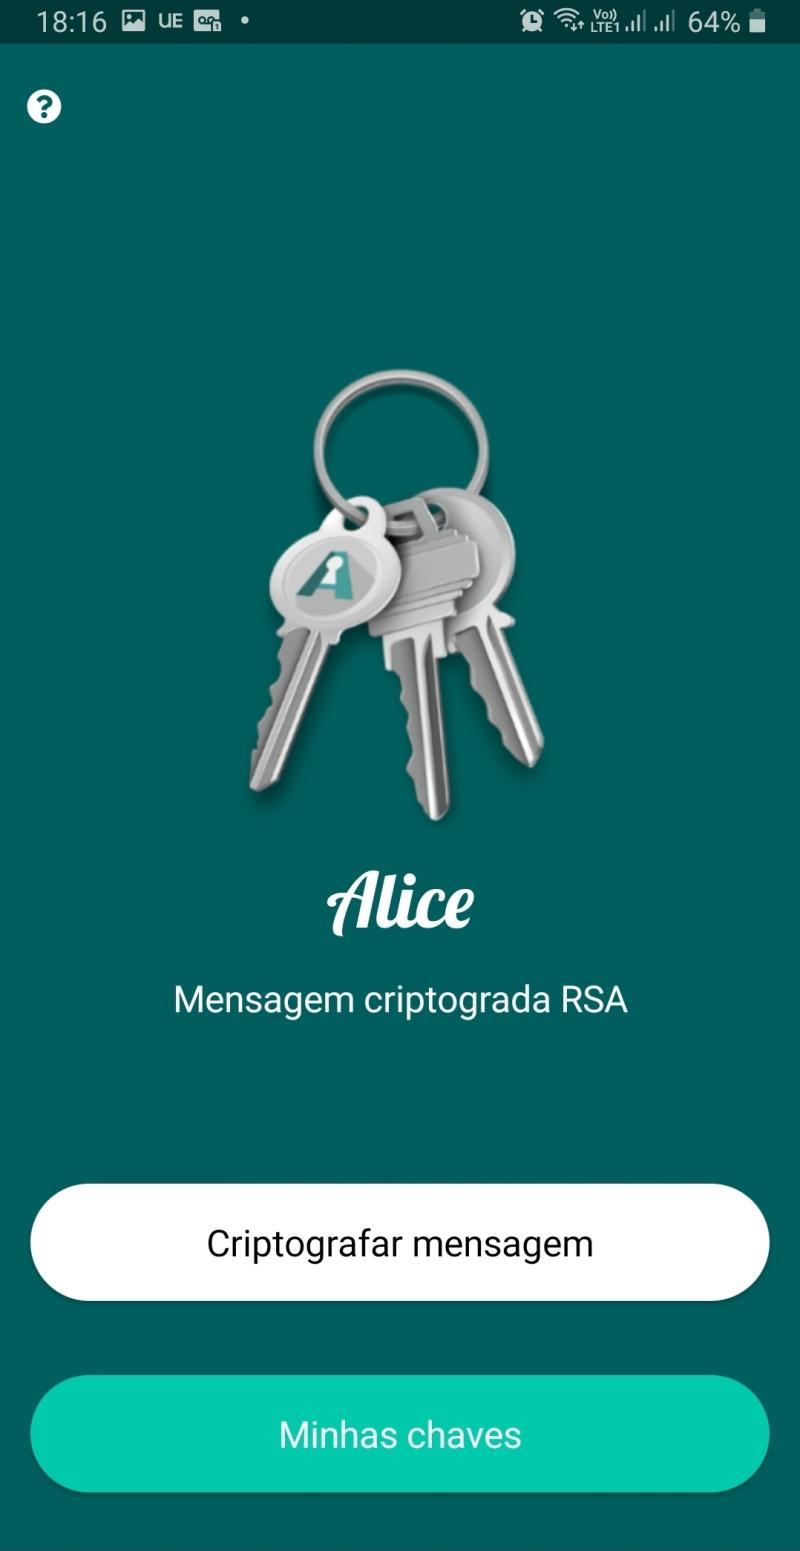 Encrypted message with RSA key pair